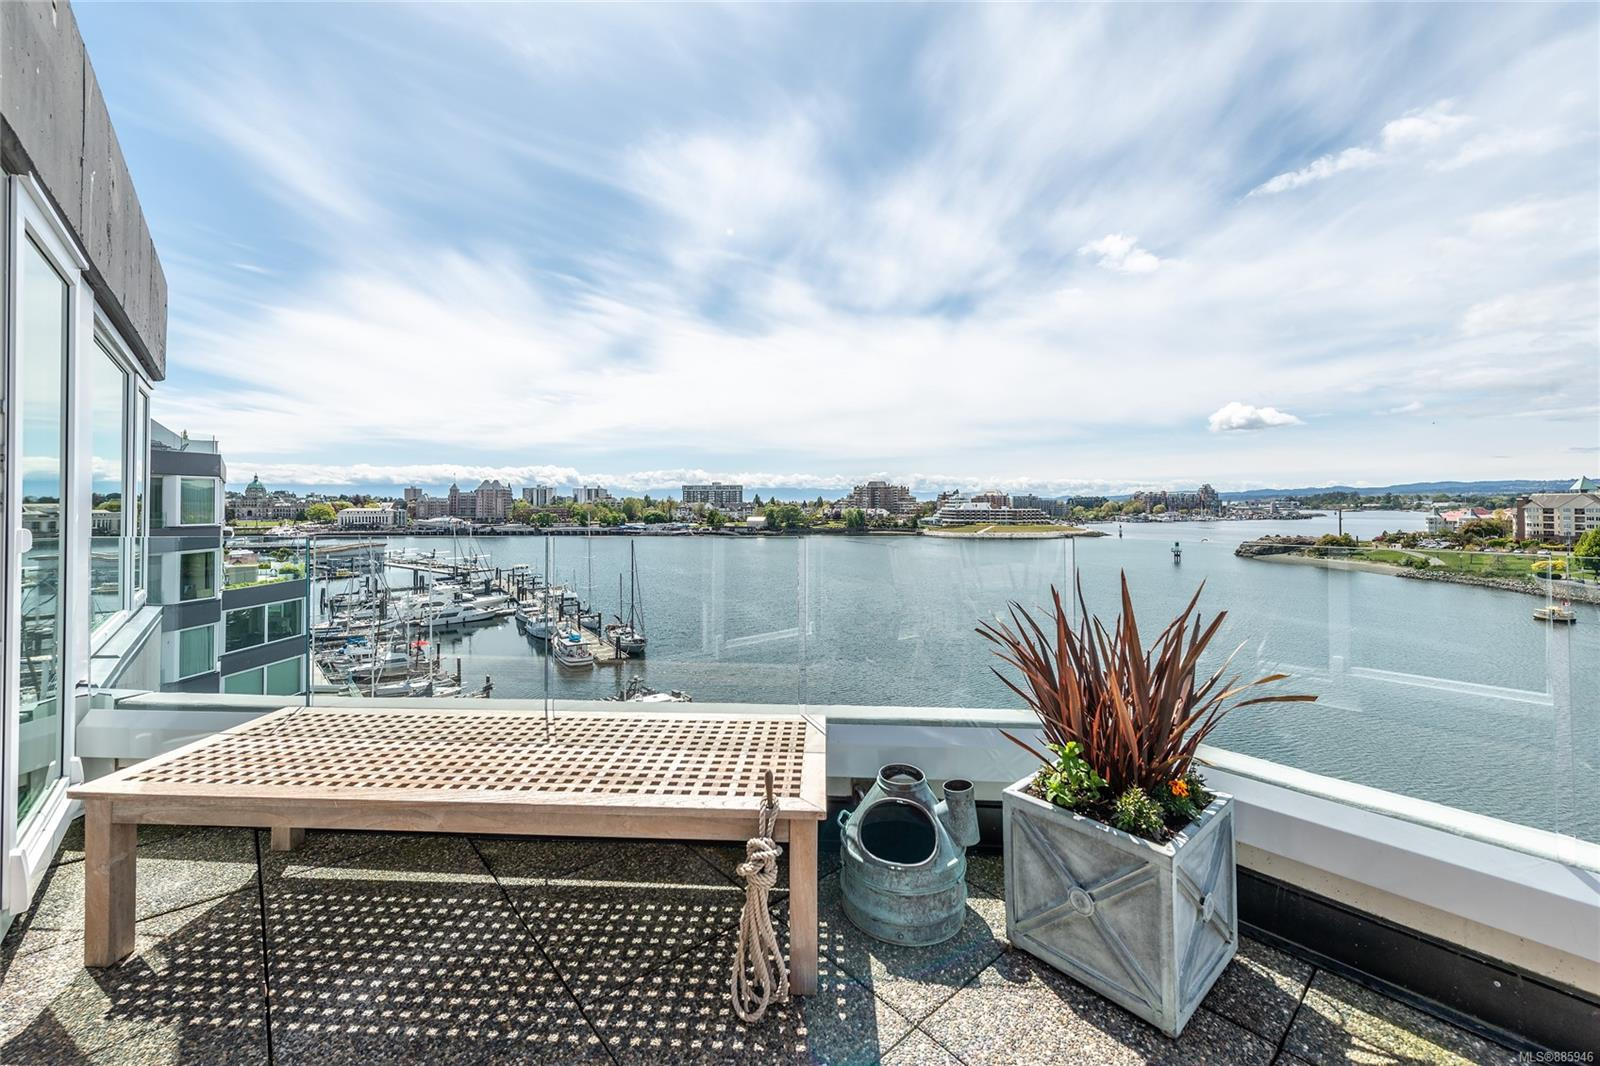 703 1234 Wharf St - Vi Downtown Condo Apartment for sale, 1 Bedroom (885946) #29